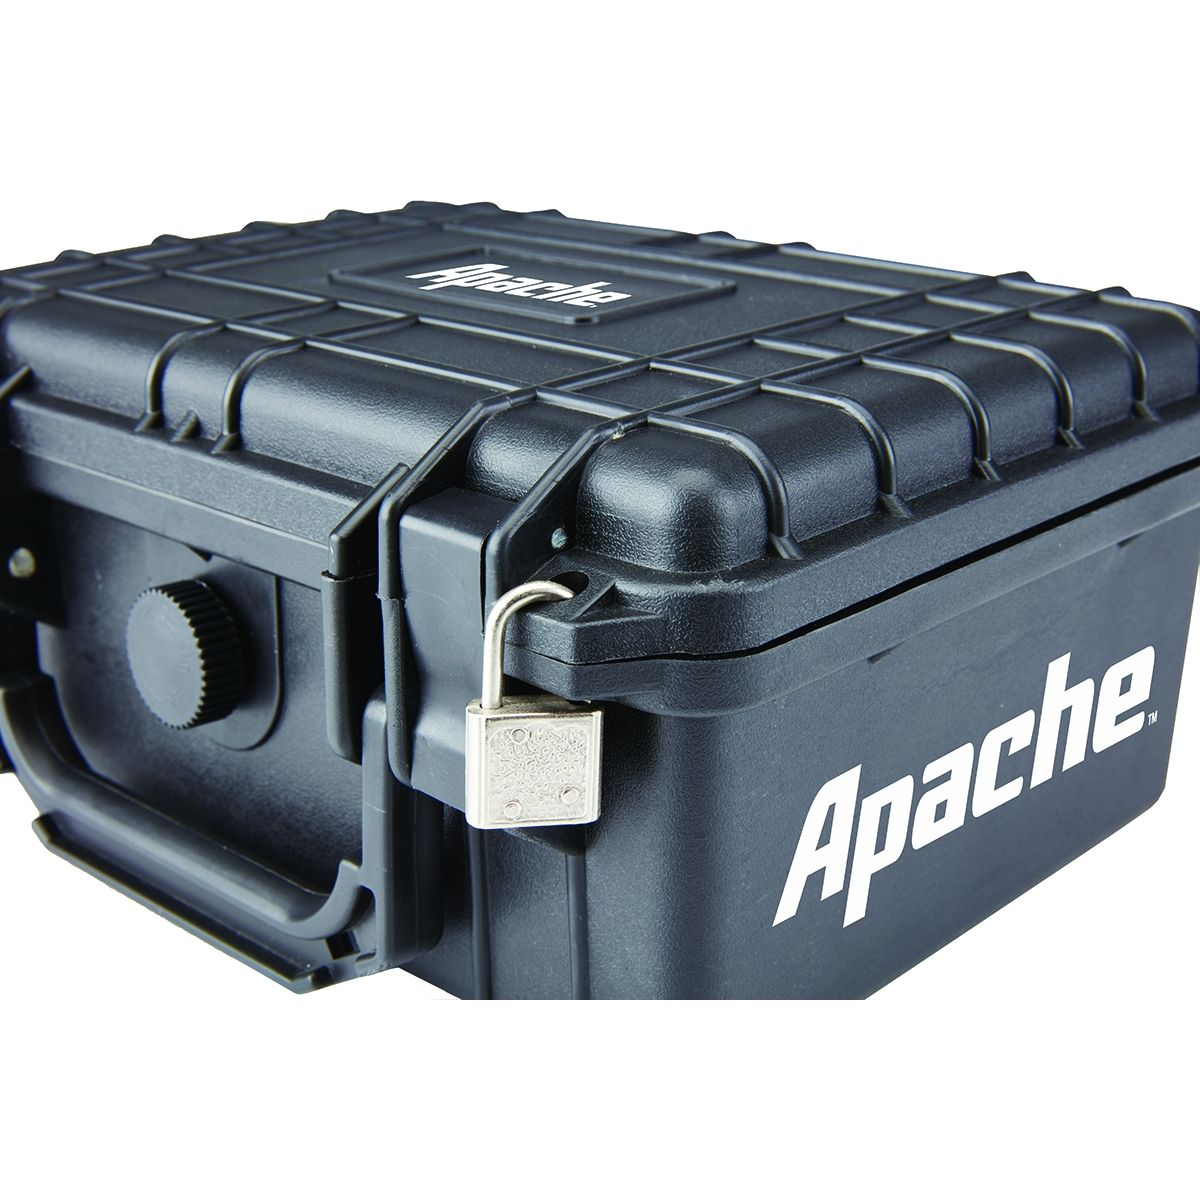 Apache Watertight Protective Hardcase